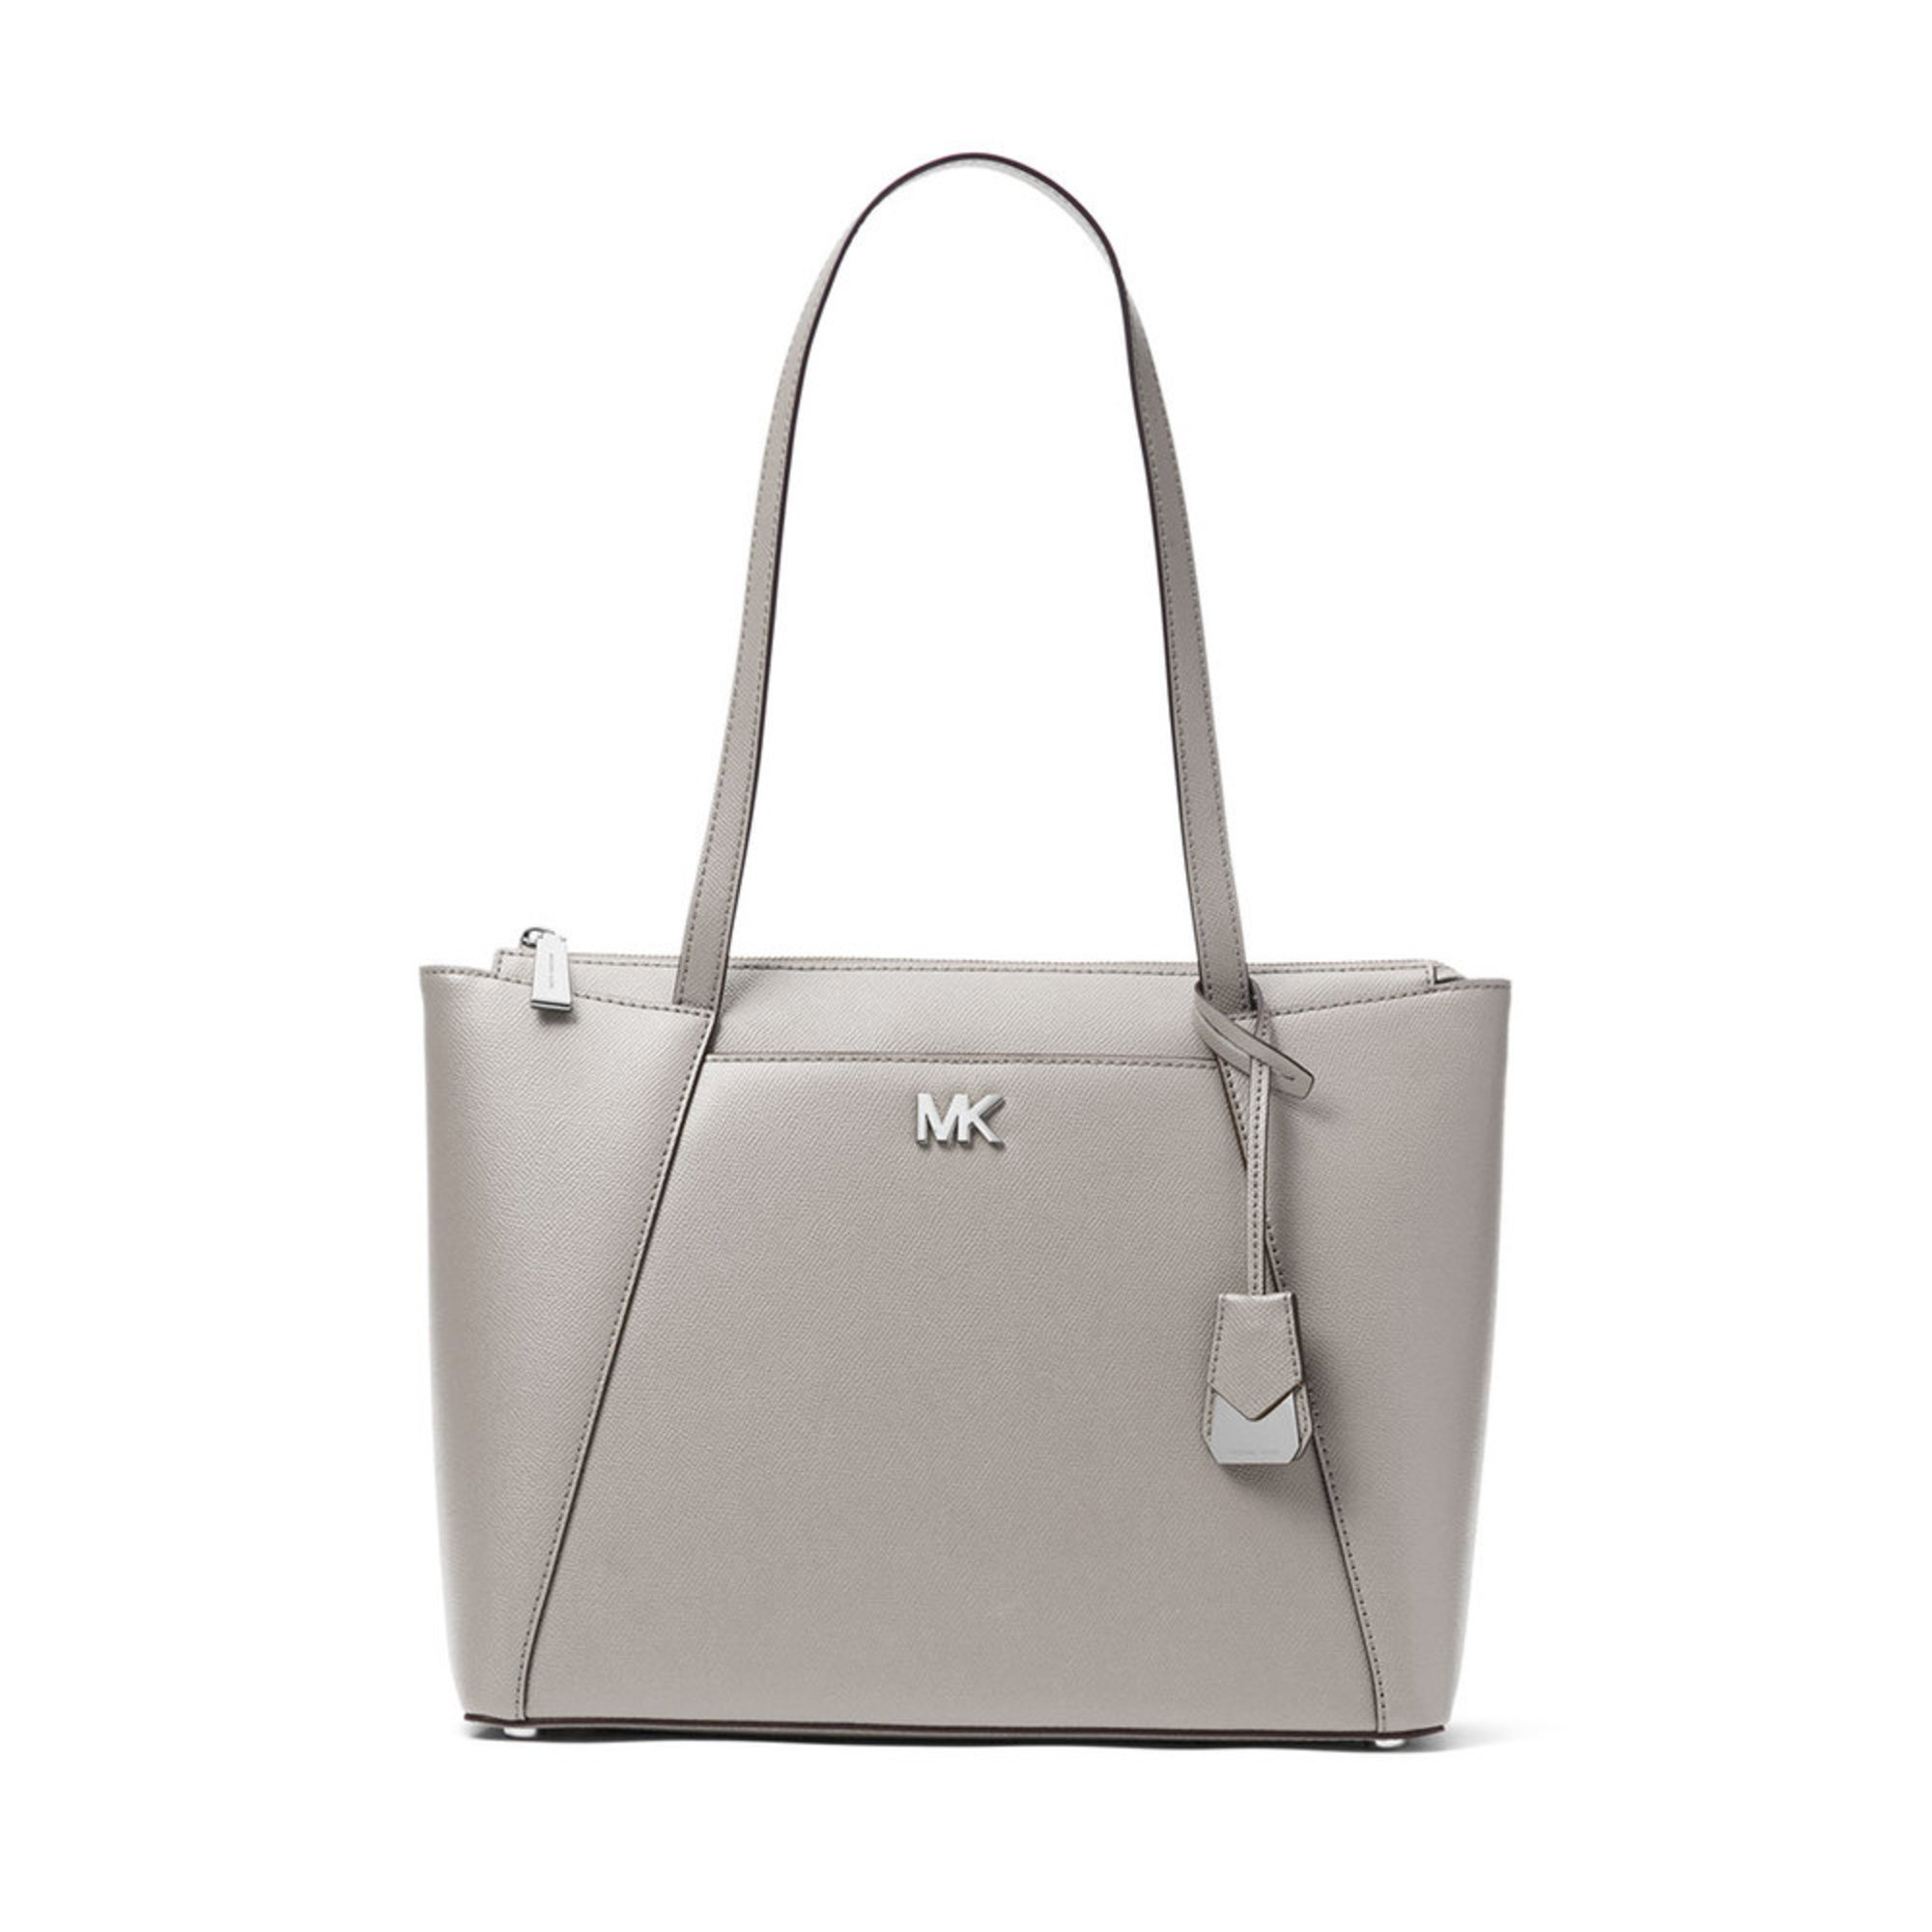 eb92d3996c356 ... jet set travel tote large carryall pearl grey handbag 194c2 08e8b  shop michael  kors mott tote medium east west top zip tote crossgrain 24859 3c44e